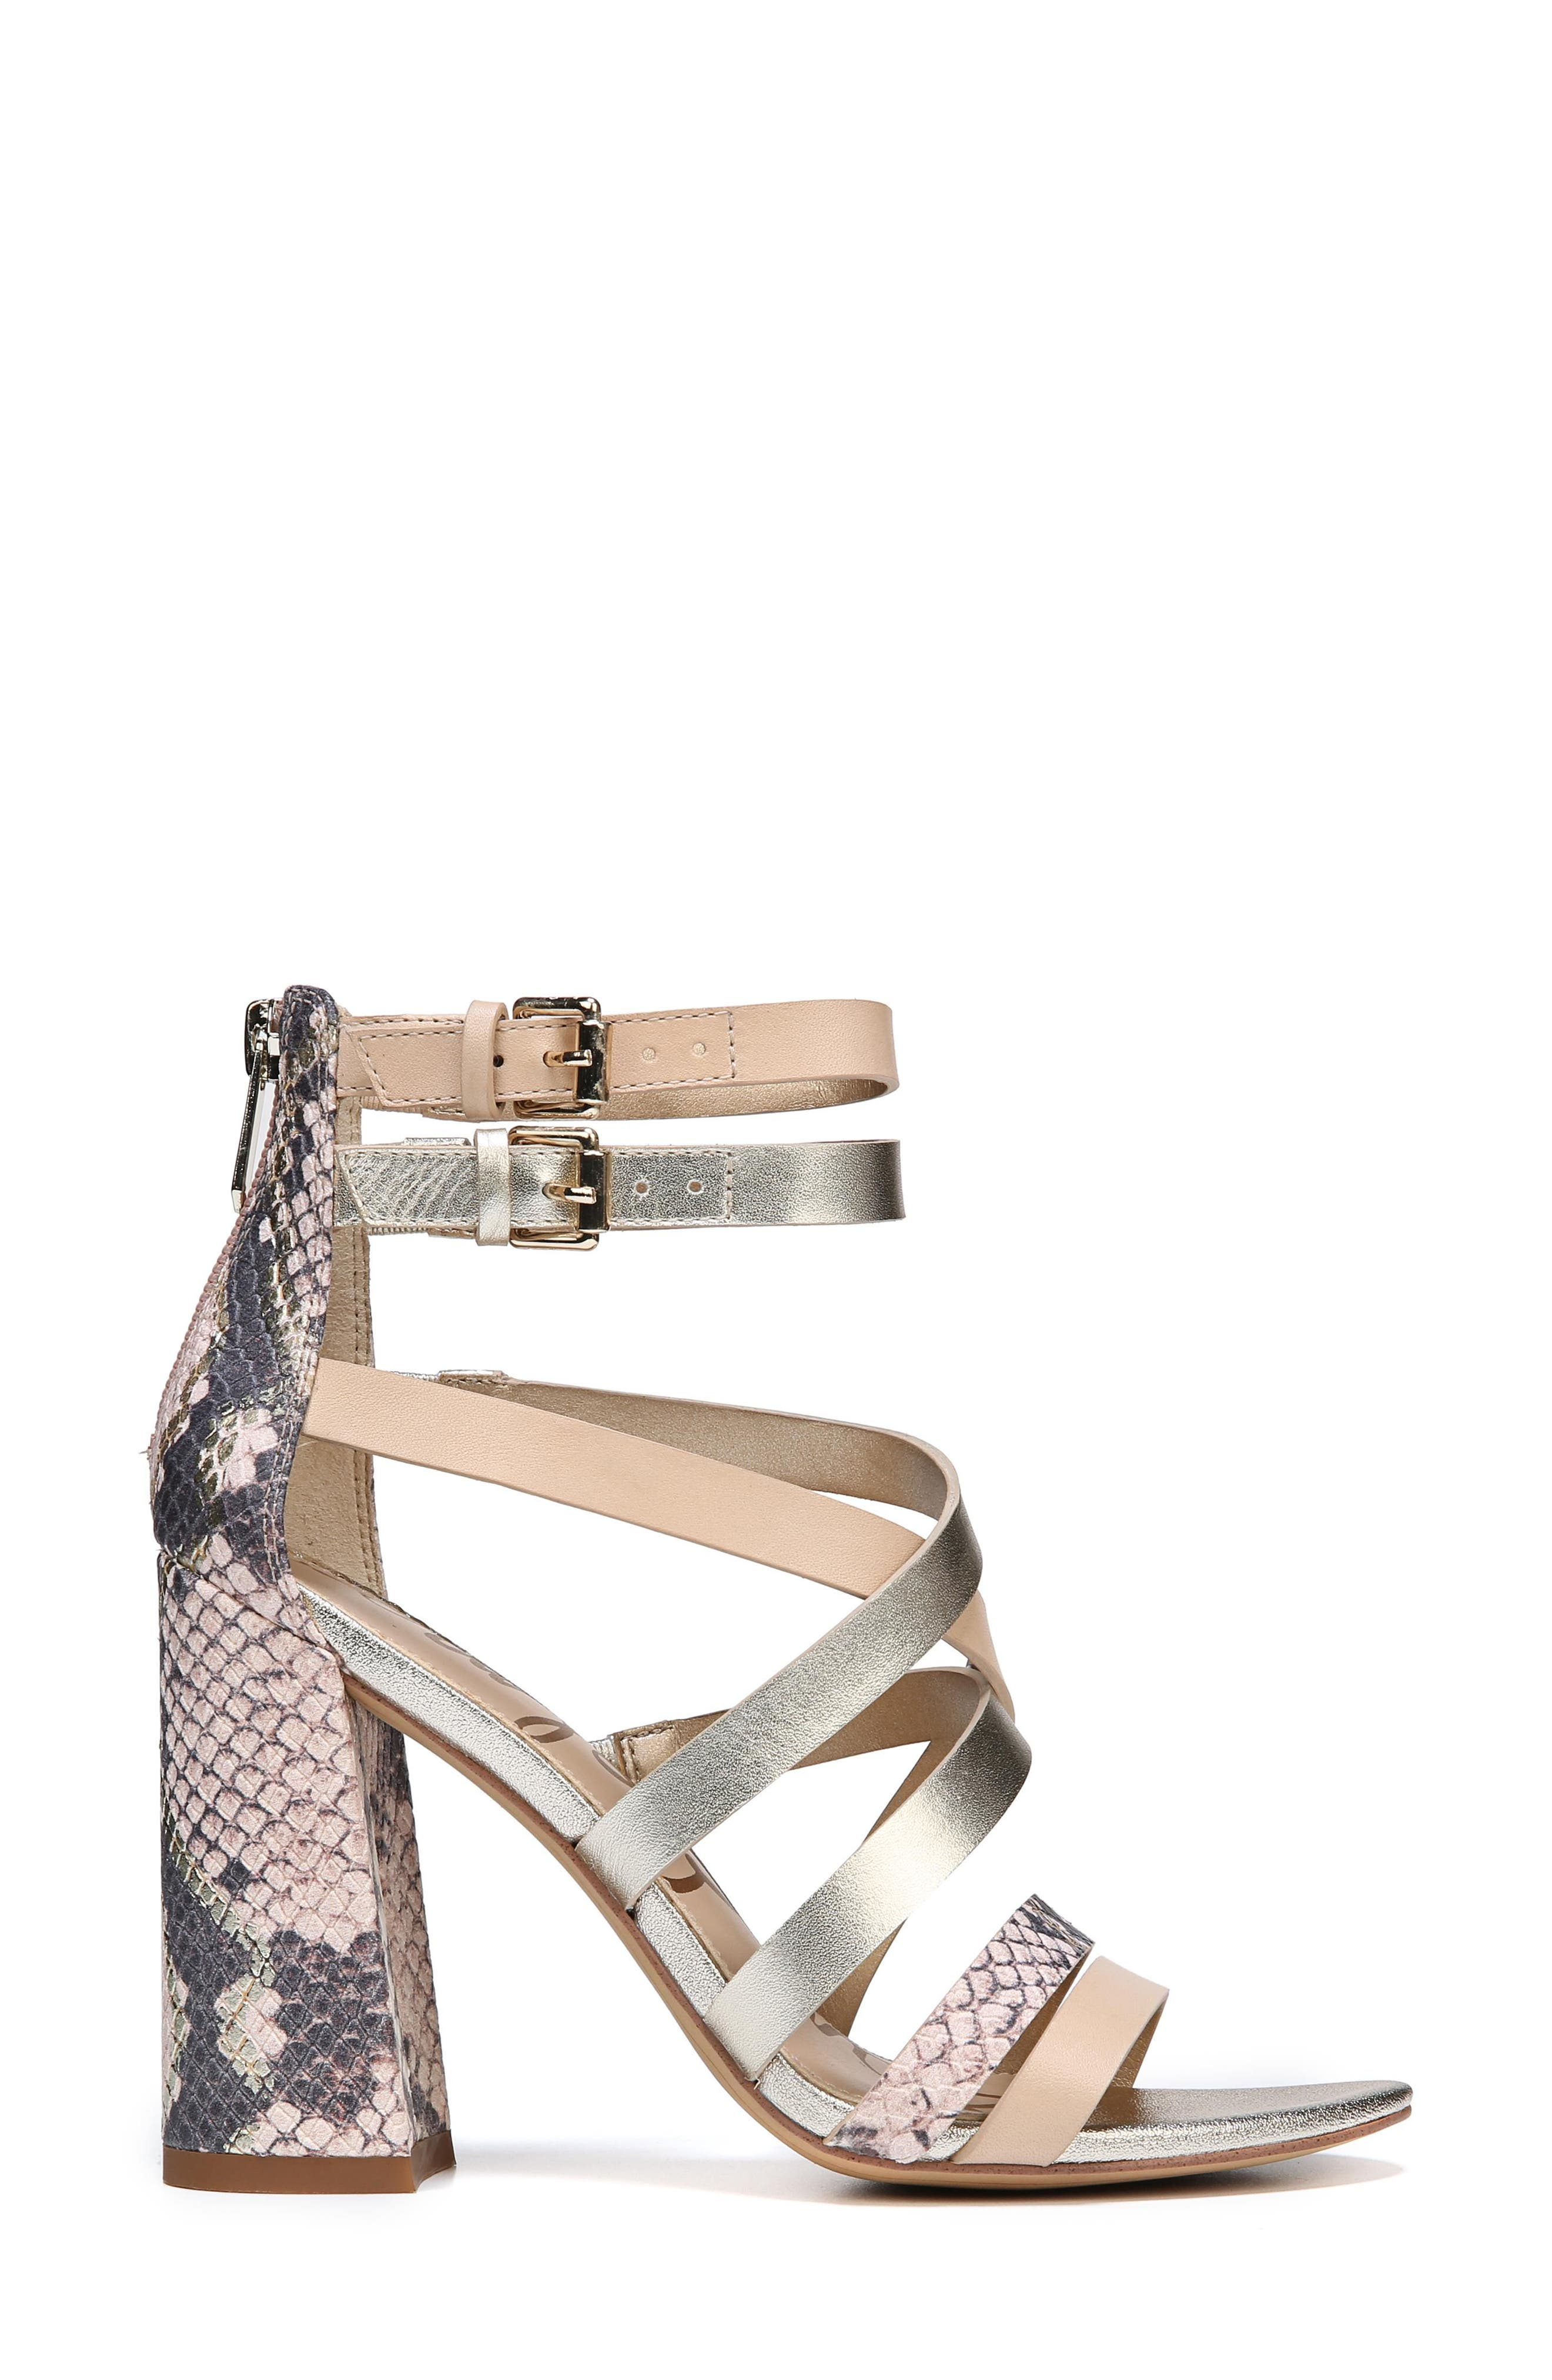 Yema Block Heel Sandal,                             Alternate thumbnail 3, color,                             NATURAL/ PINK/ JUTE